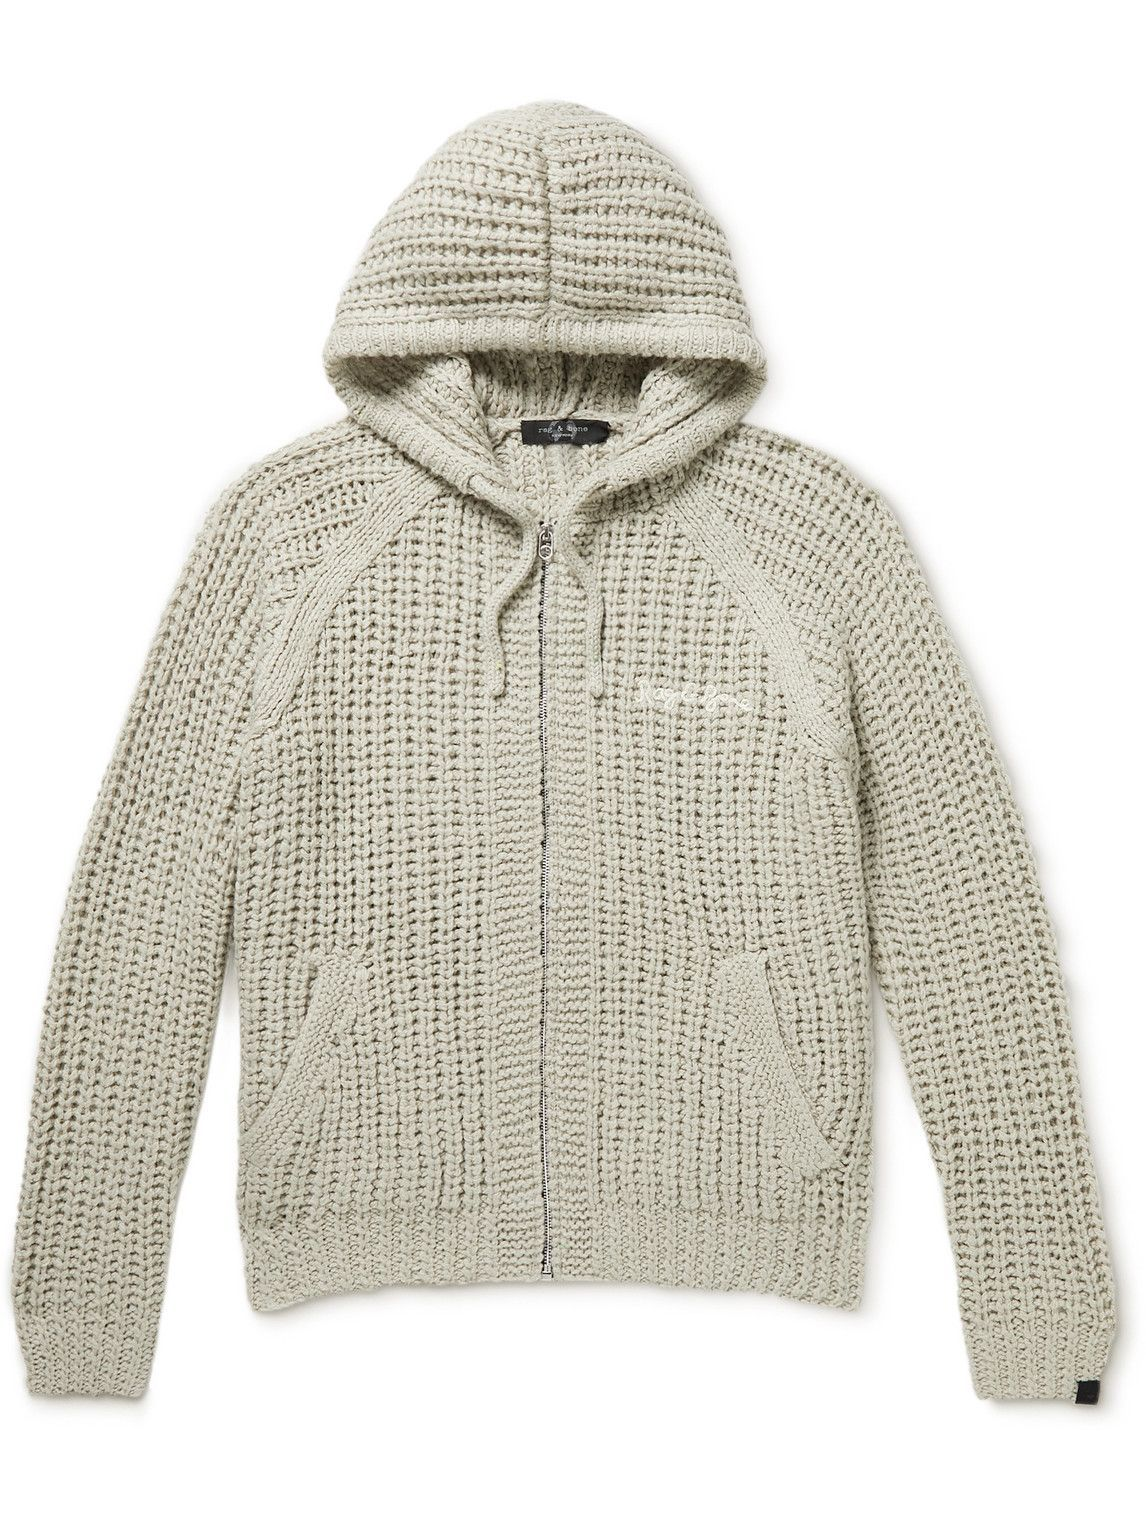 Photo: Rag & Bone - Logo-Embroidered Ribbed-Knit Zip-Up Hoodie - Gray